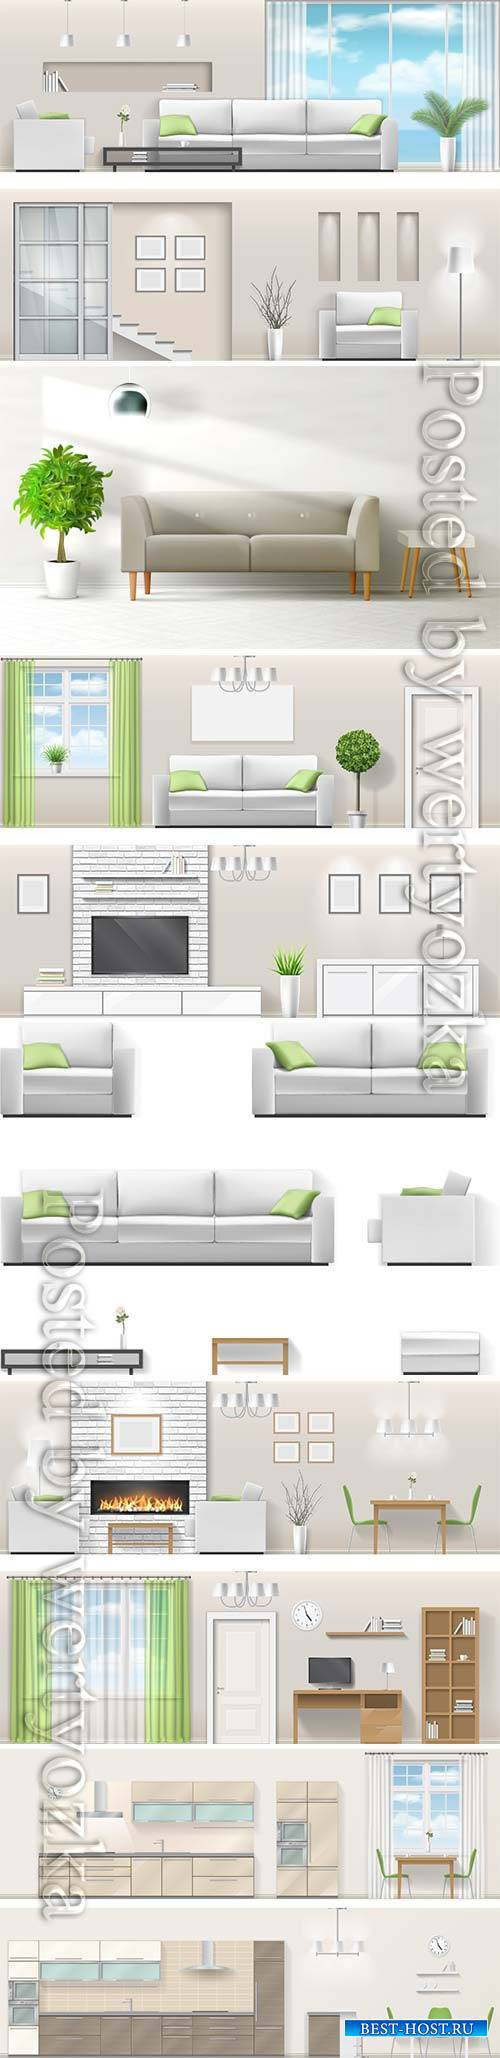 Modern interior in vector, kitchen, living room, bedroom